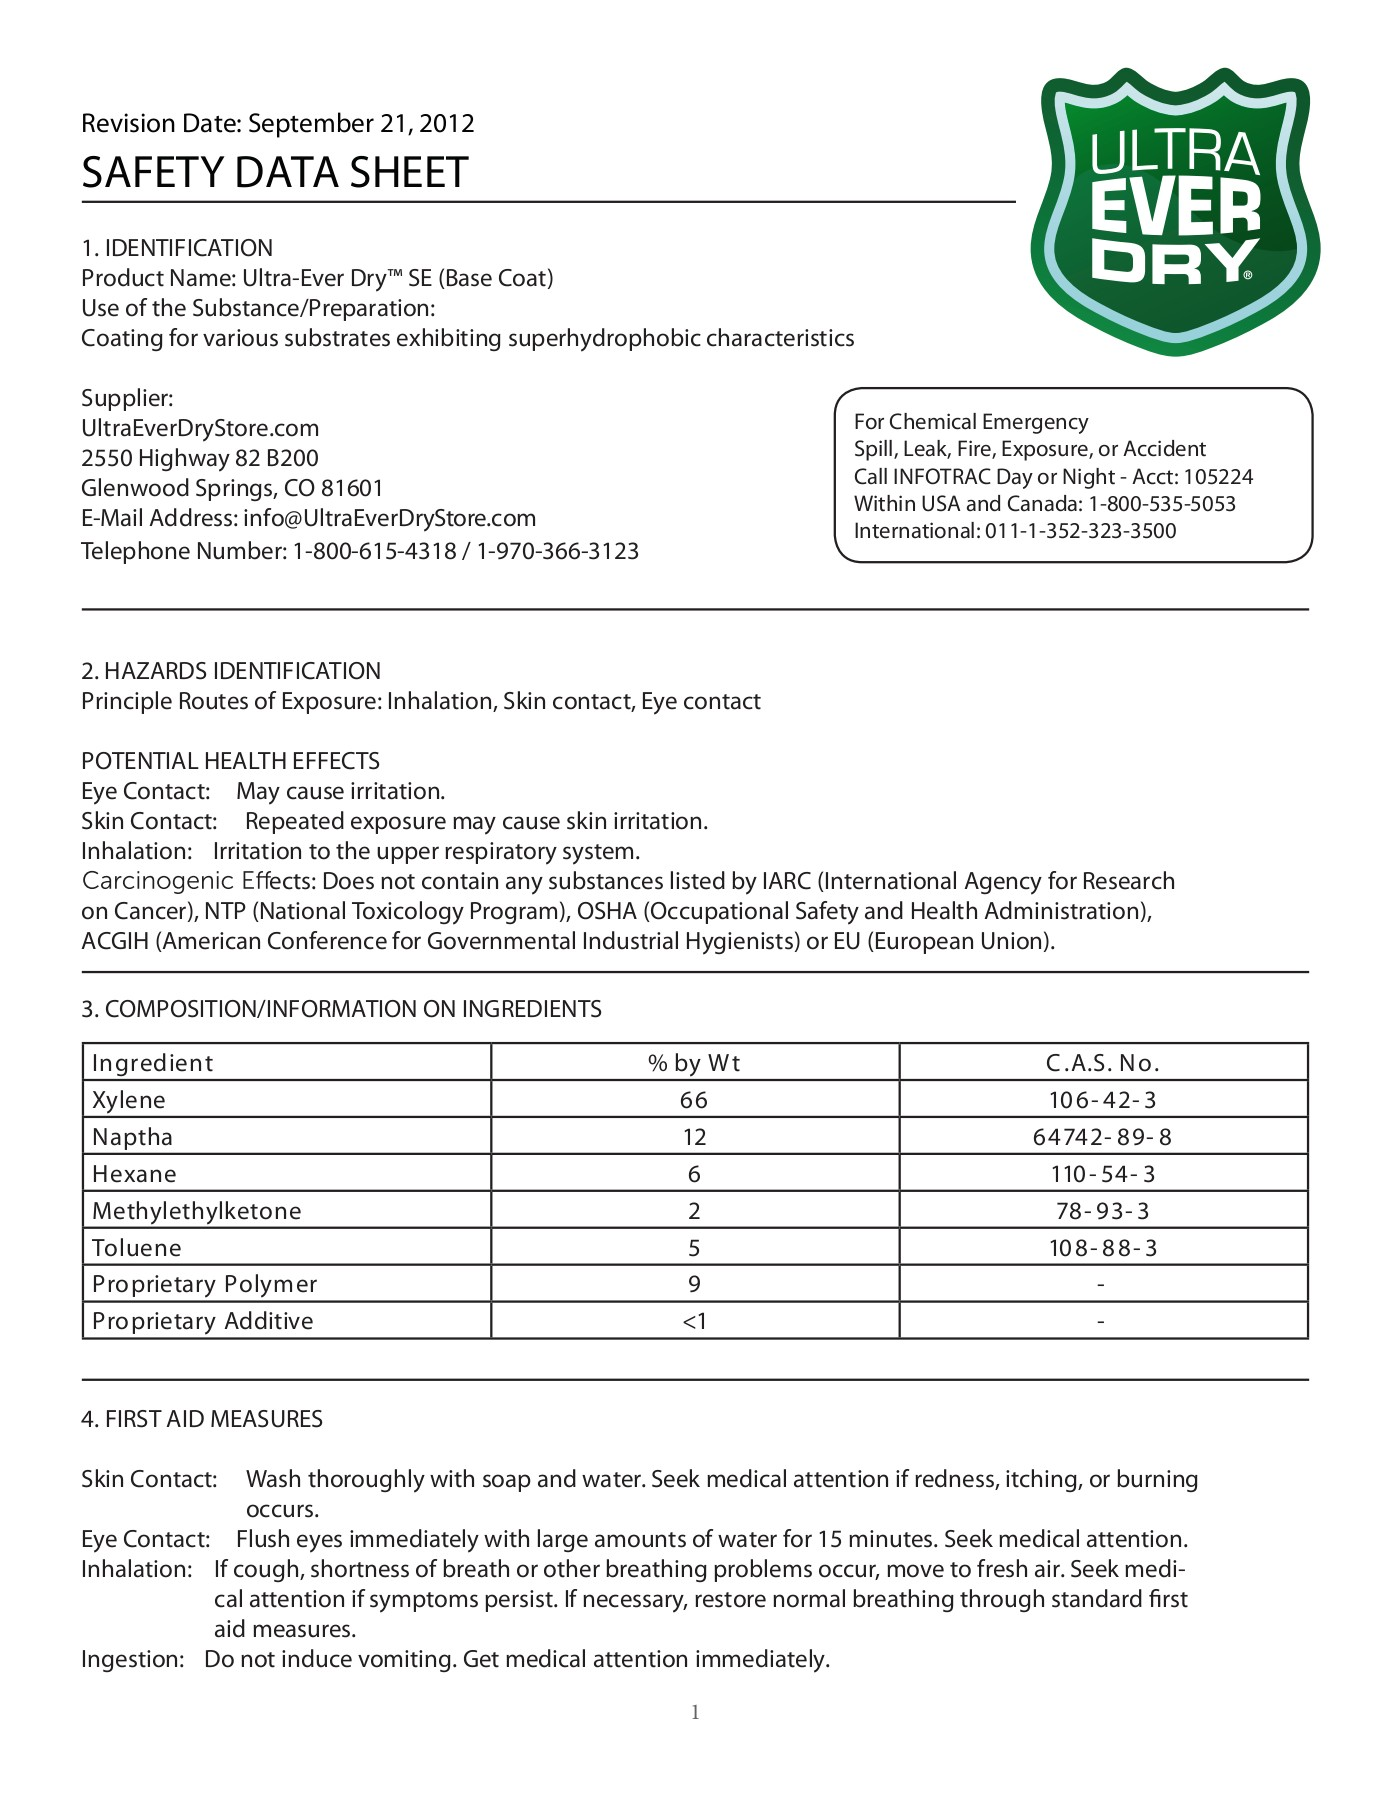 Revision Date: September 21, 2012 SAFETY DATA SHEET Pages 1